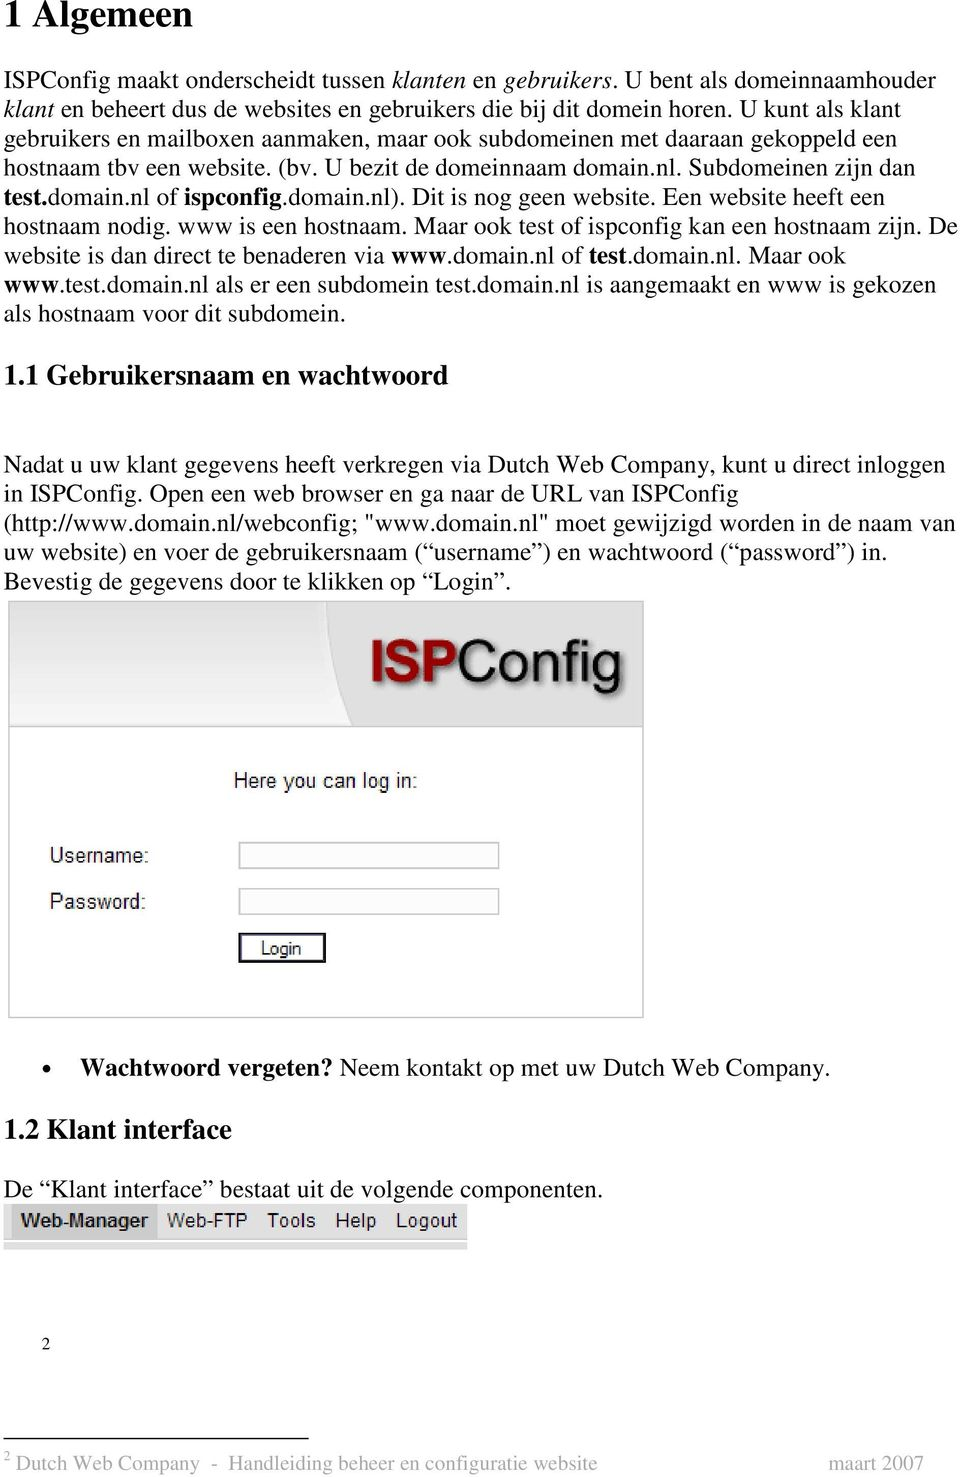 domain.nl). Dit is nog geen website. Een website heeft een hostnaam nodig. www is een hostnaam. Maar ook test of ispconfig kan een hostnaam zijn. De website is dan direct te benaderen via www.domain.nl of test.